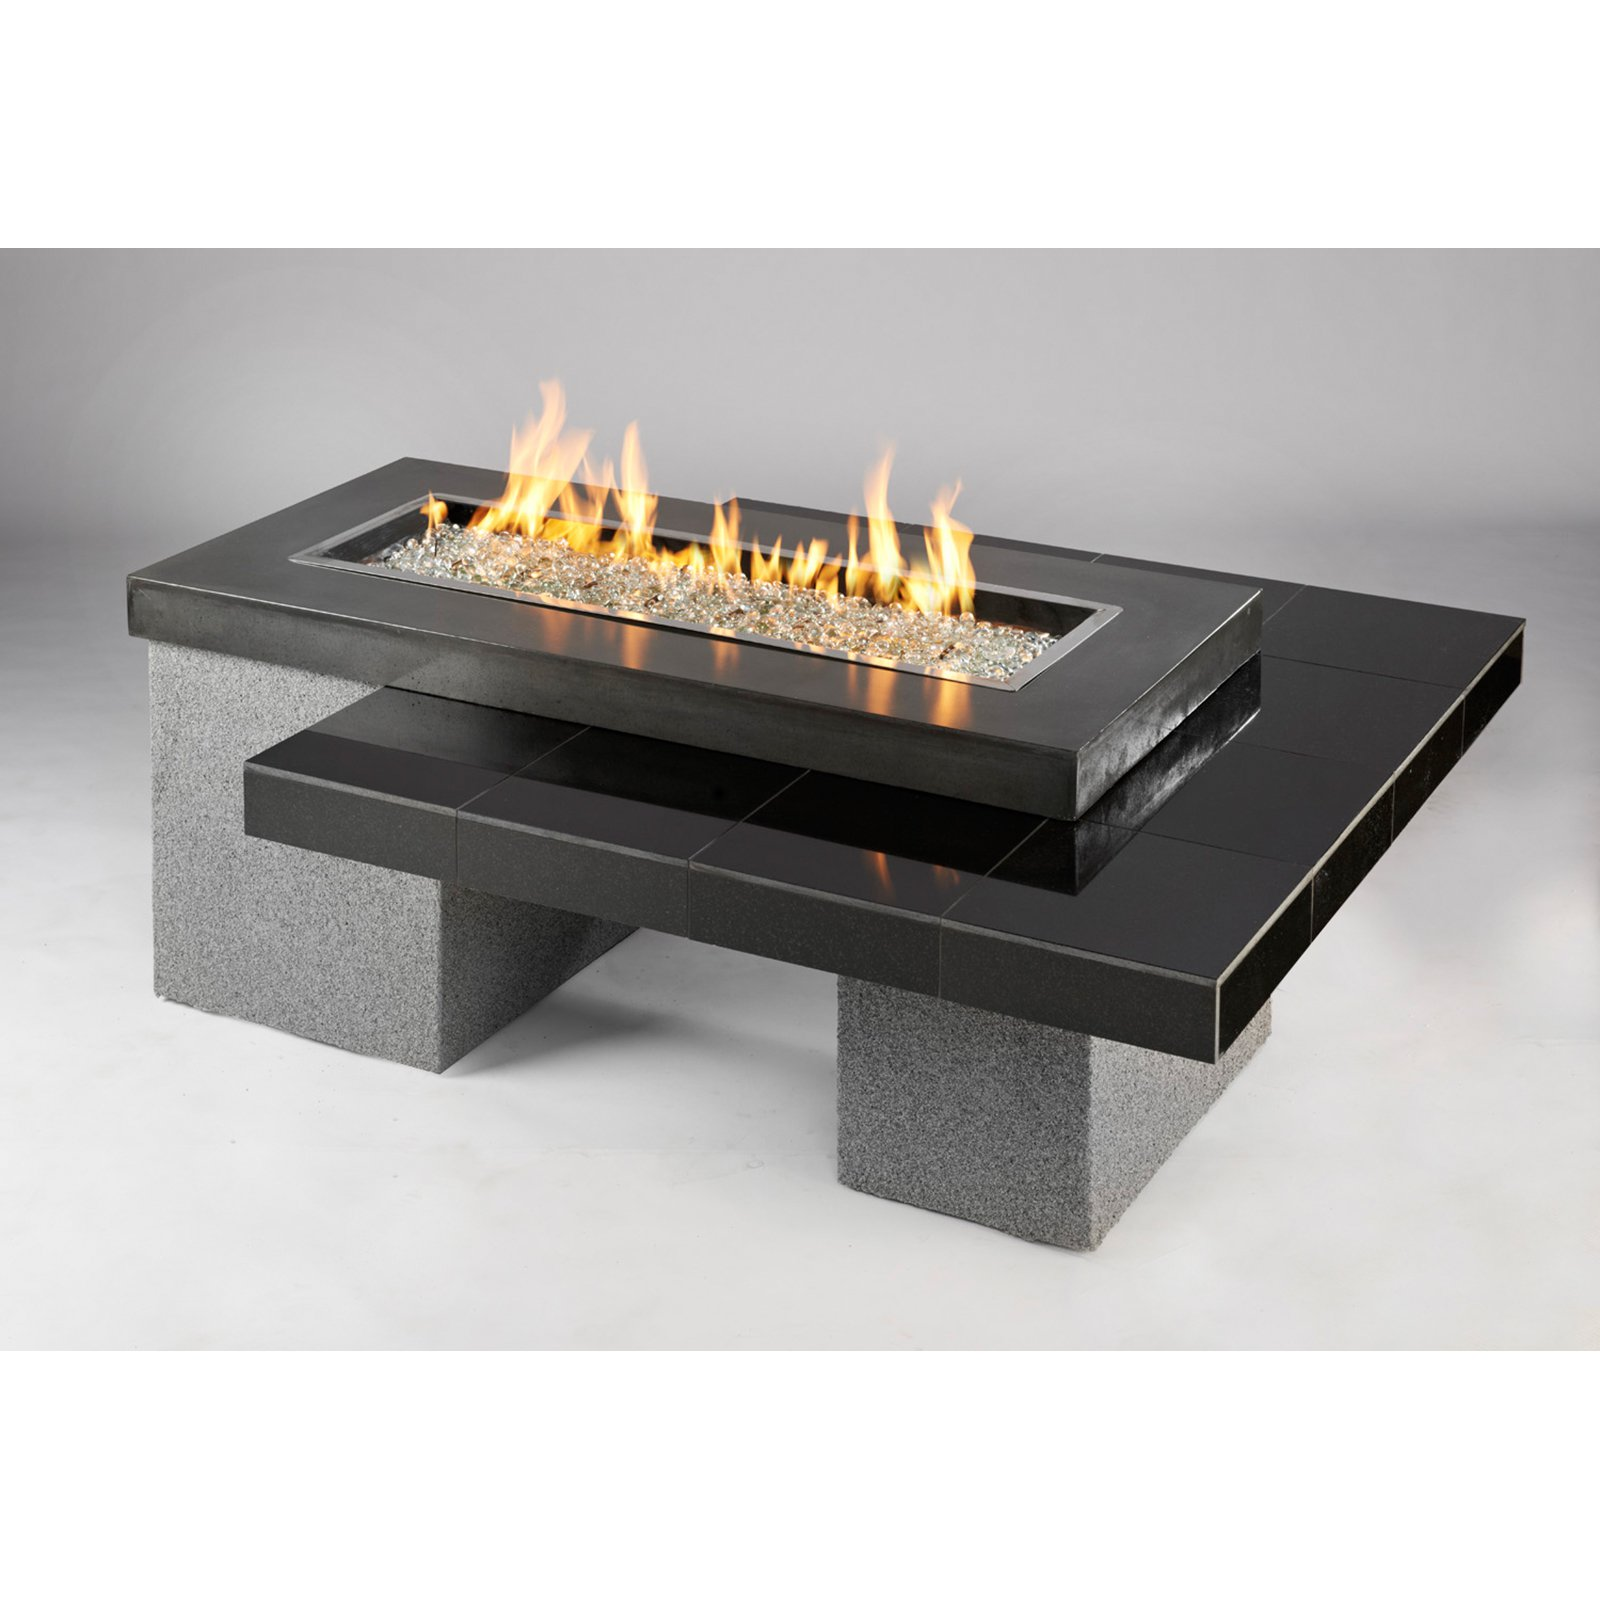 Outdoor GreatRoom Uptown Firepit Table 80k BTUs by The Outdoor GreatRoom Company